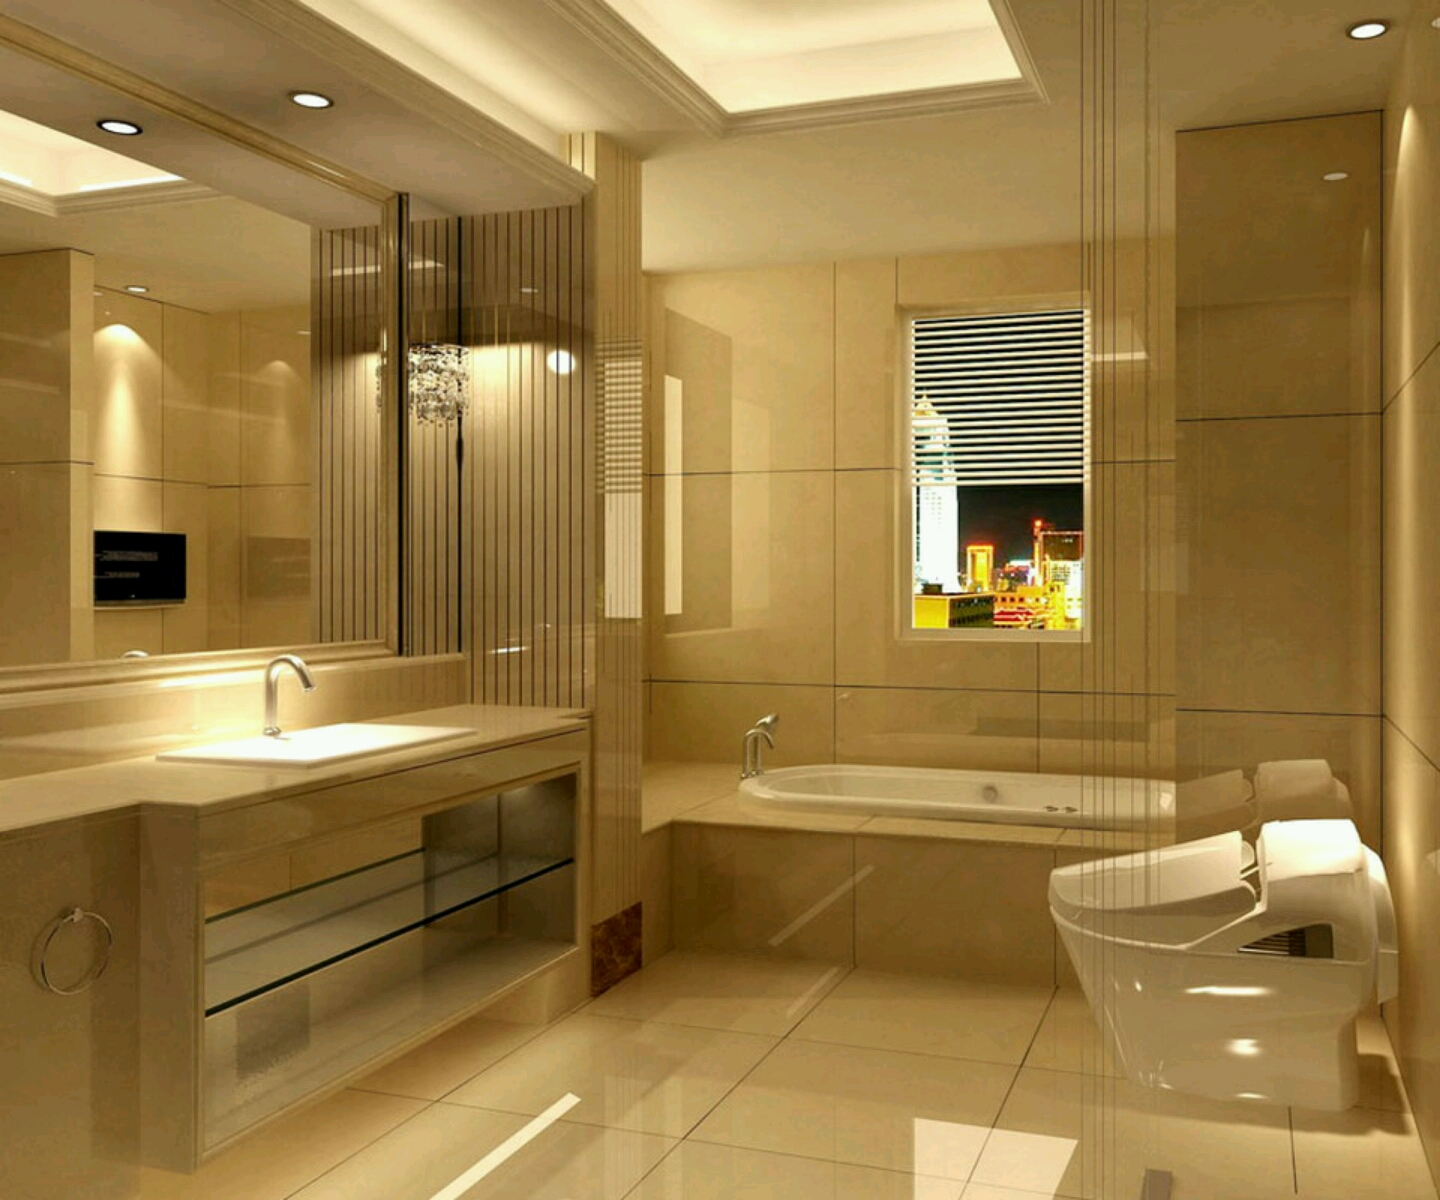 Modern bathrooms setting ideas furniture gallery for Bathroom designs